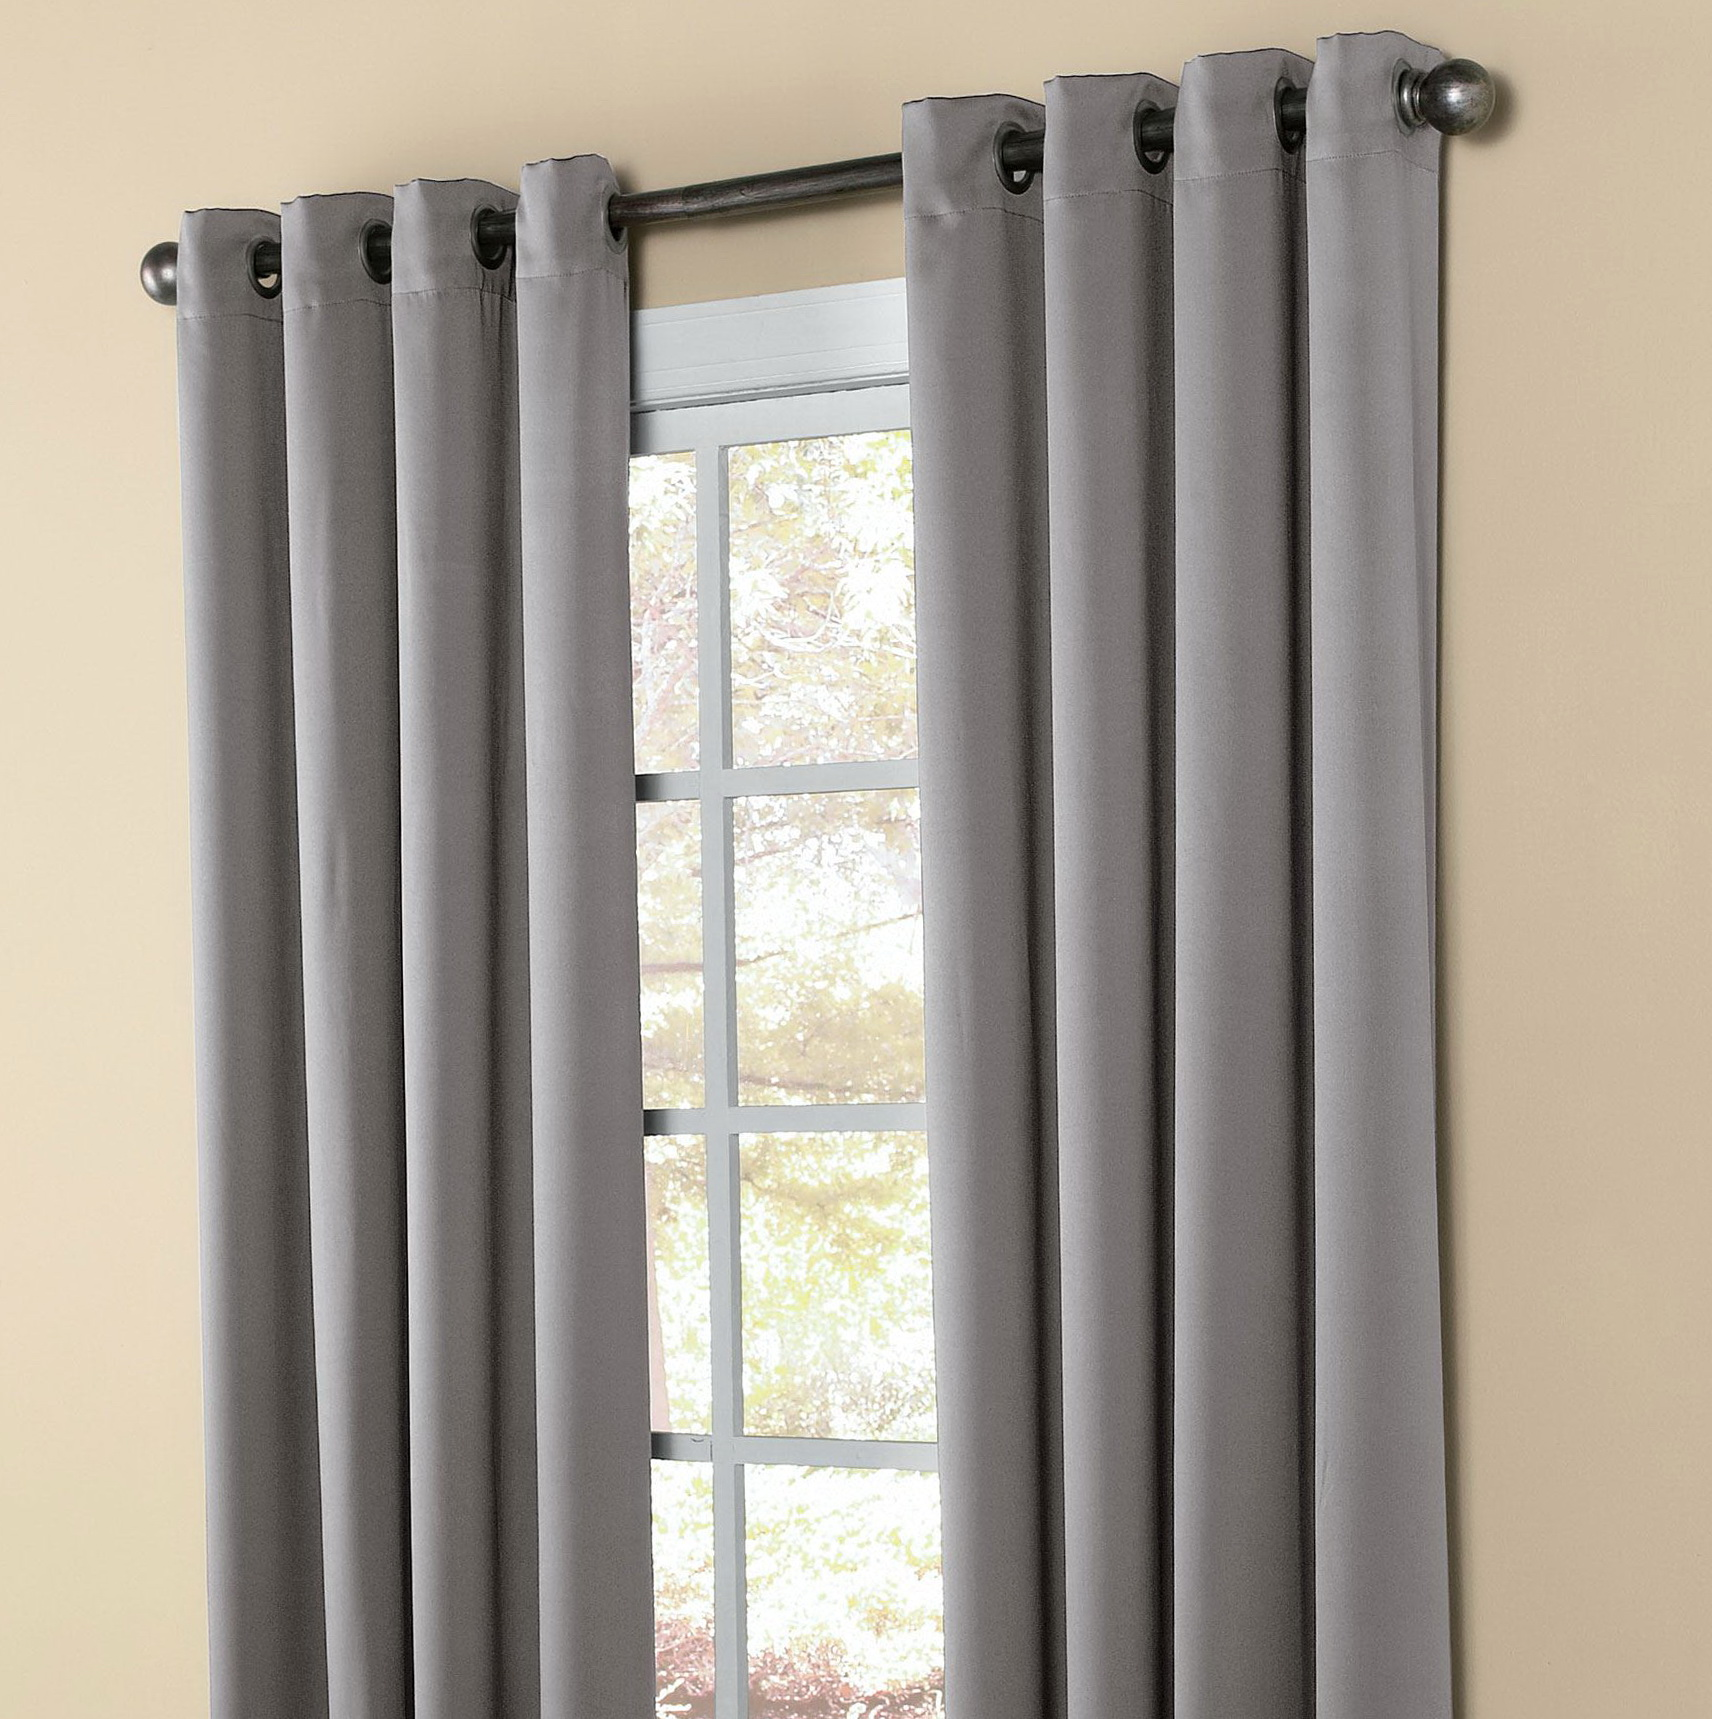 Grommet Blackout Curtains Walmart Home Design Ideas